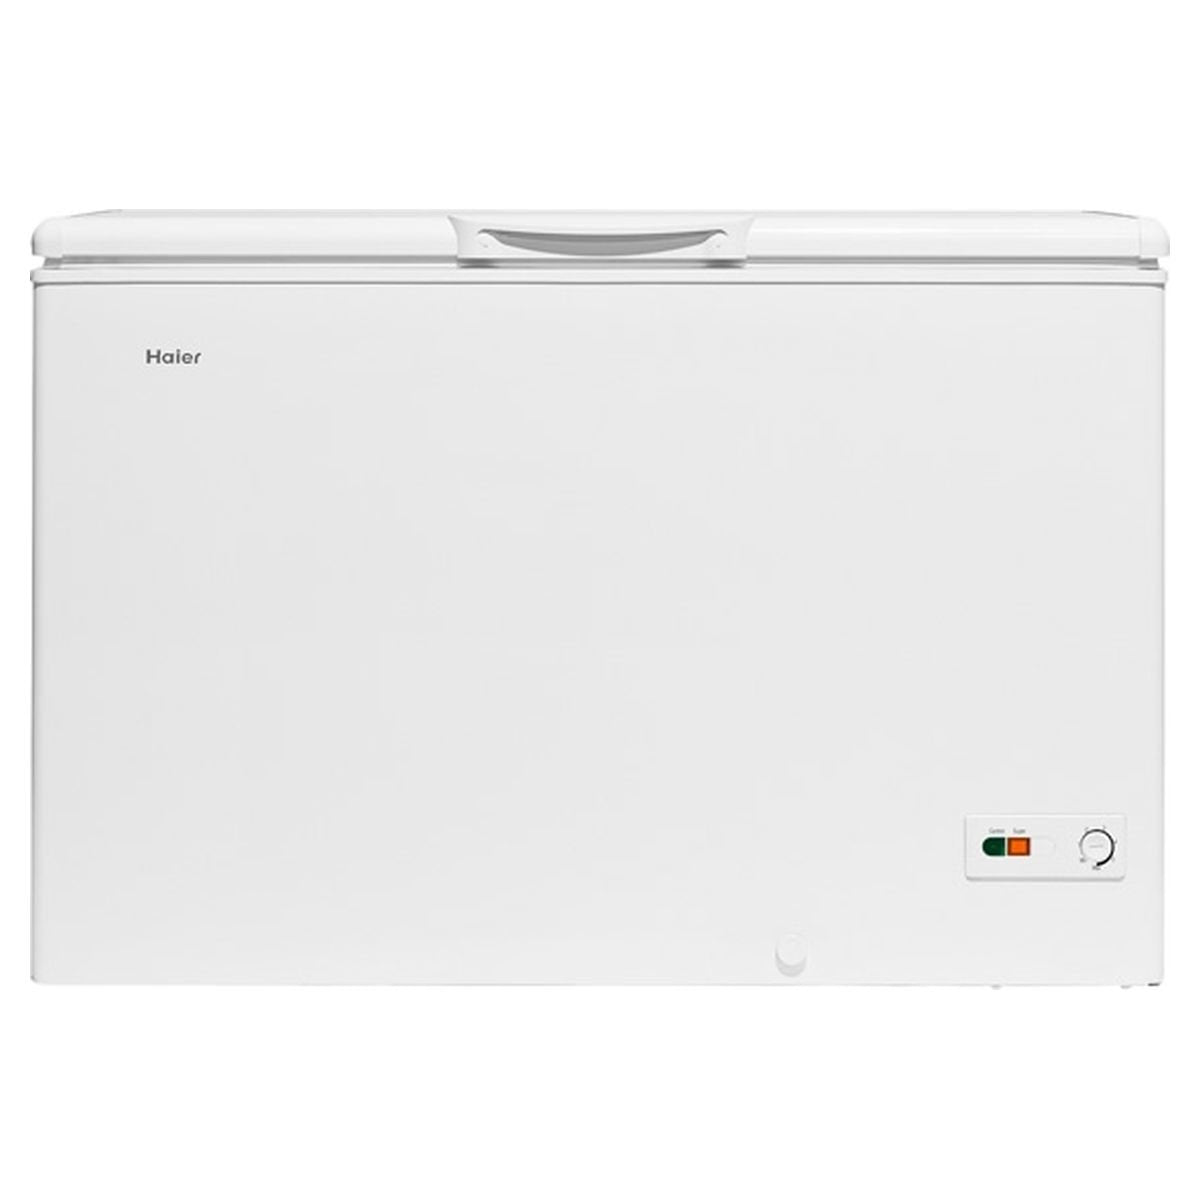 Haier Chest Freezer 324 L - Brisbane Home Appliances